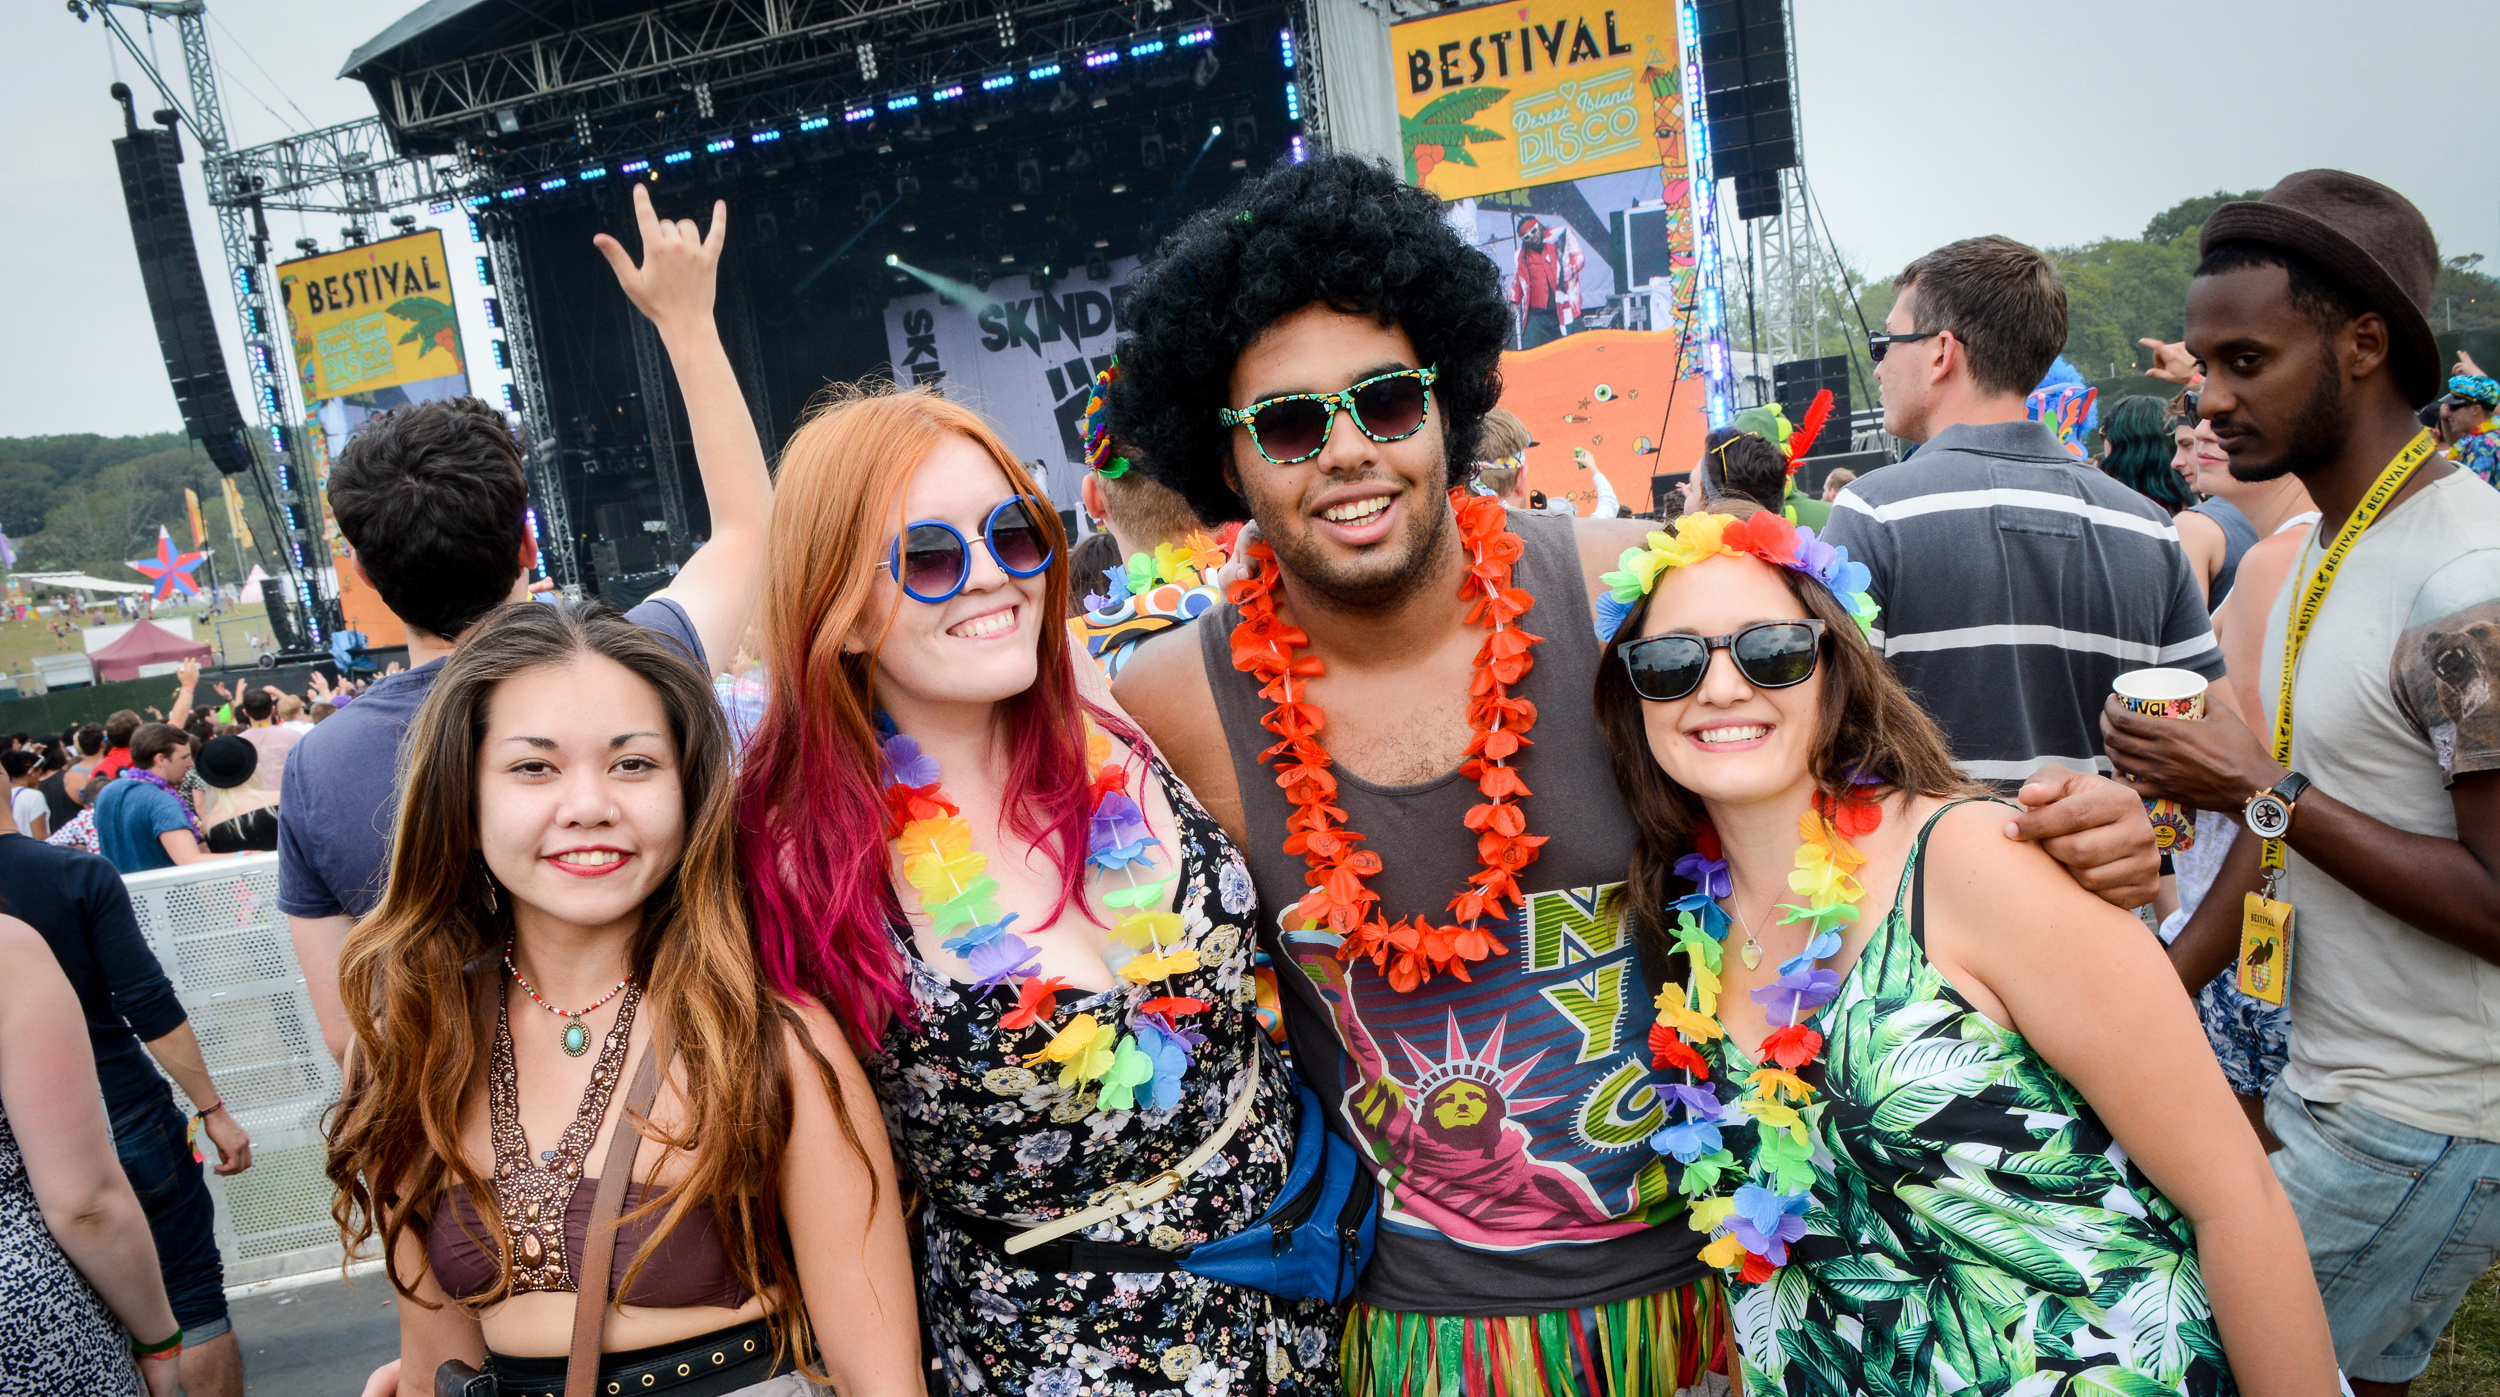 Looking suave in front of the main stage at Bestival 2014